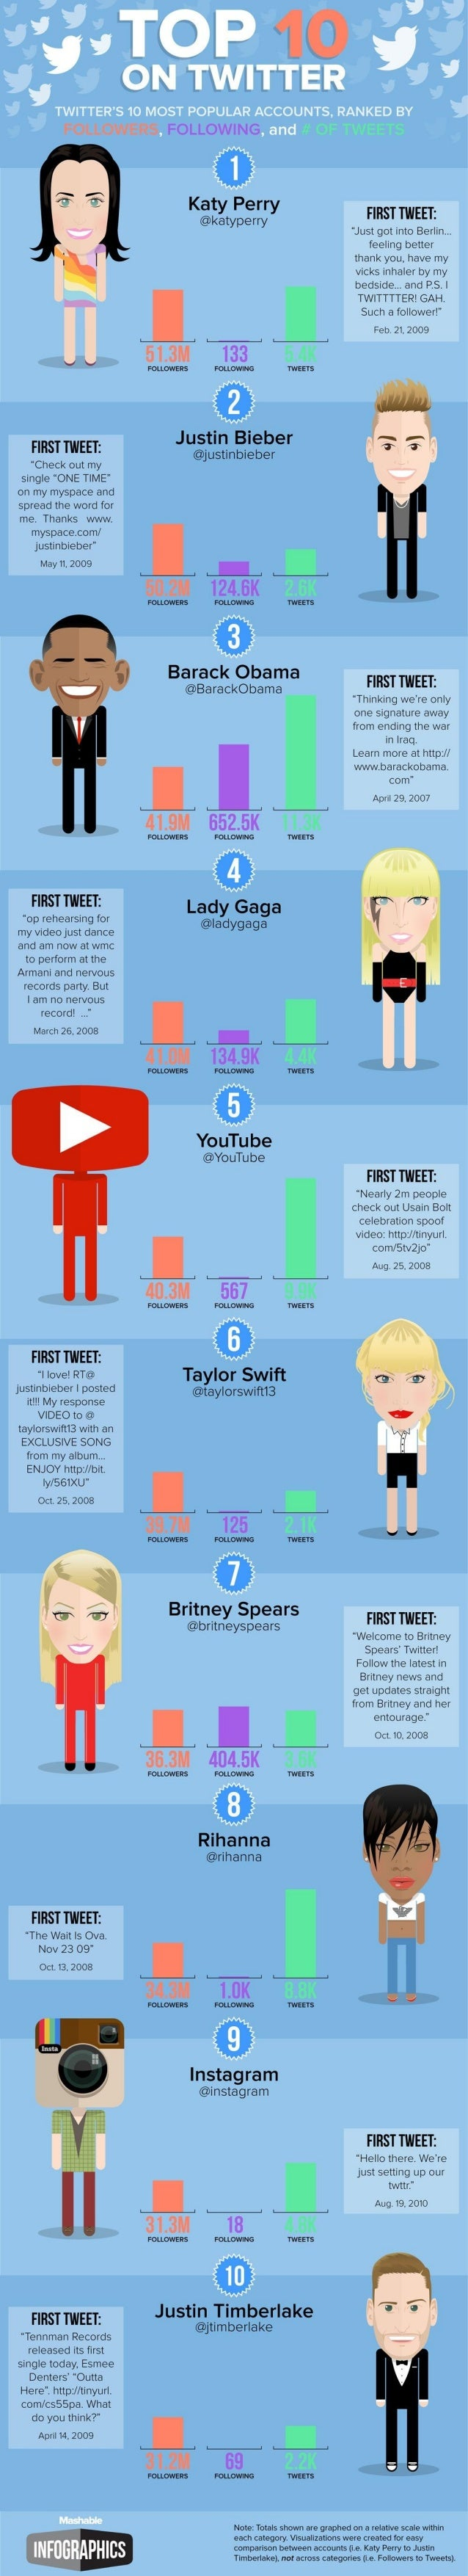 The Top 10 Most-Followed Twitter Accounts 2014